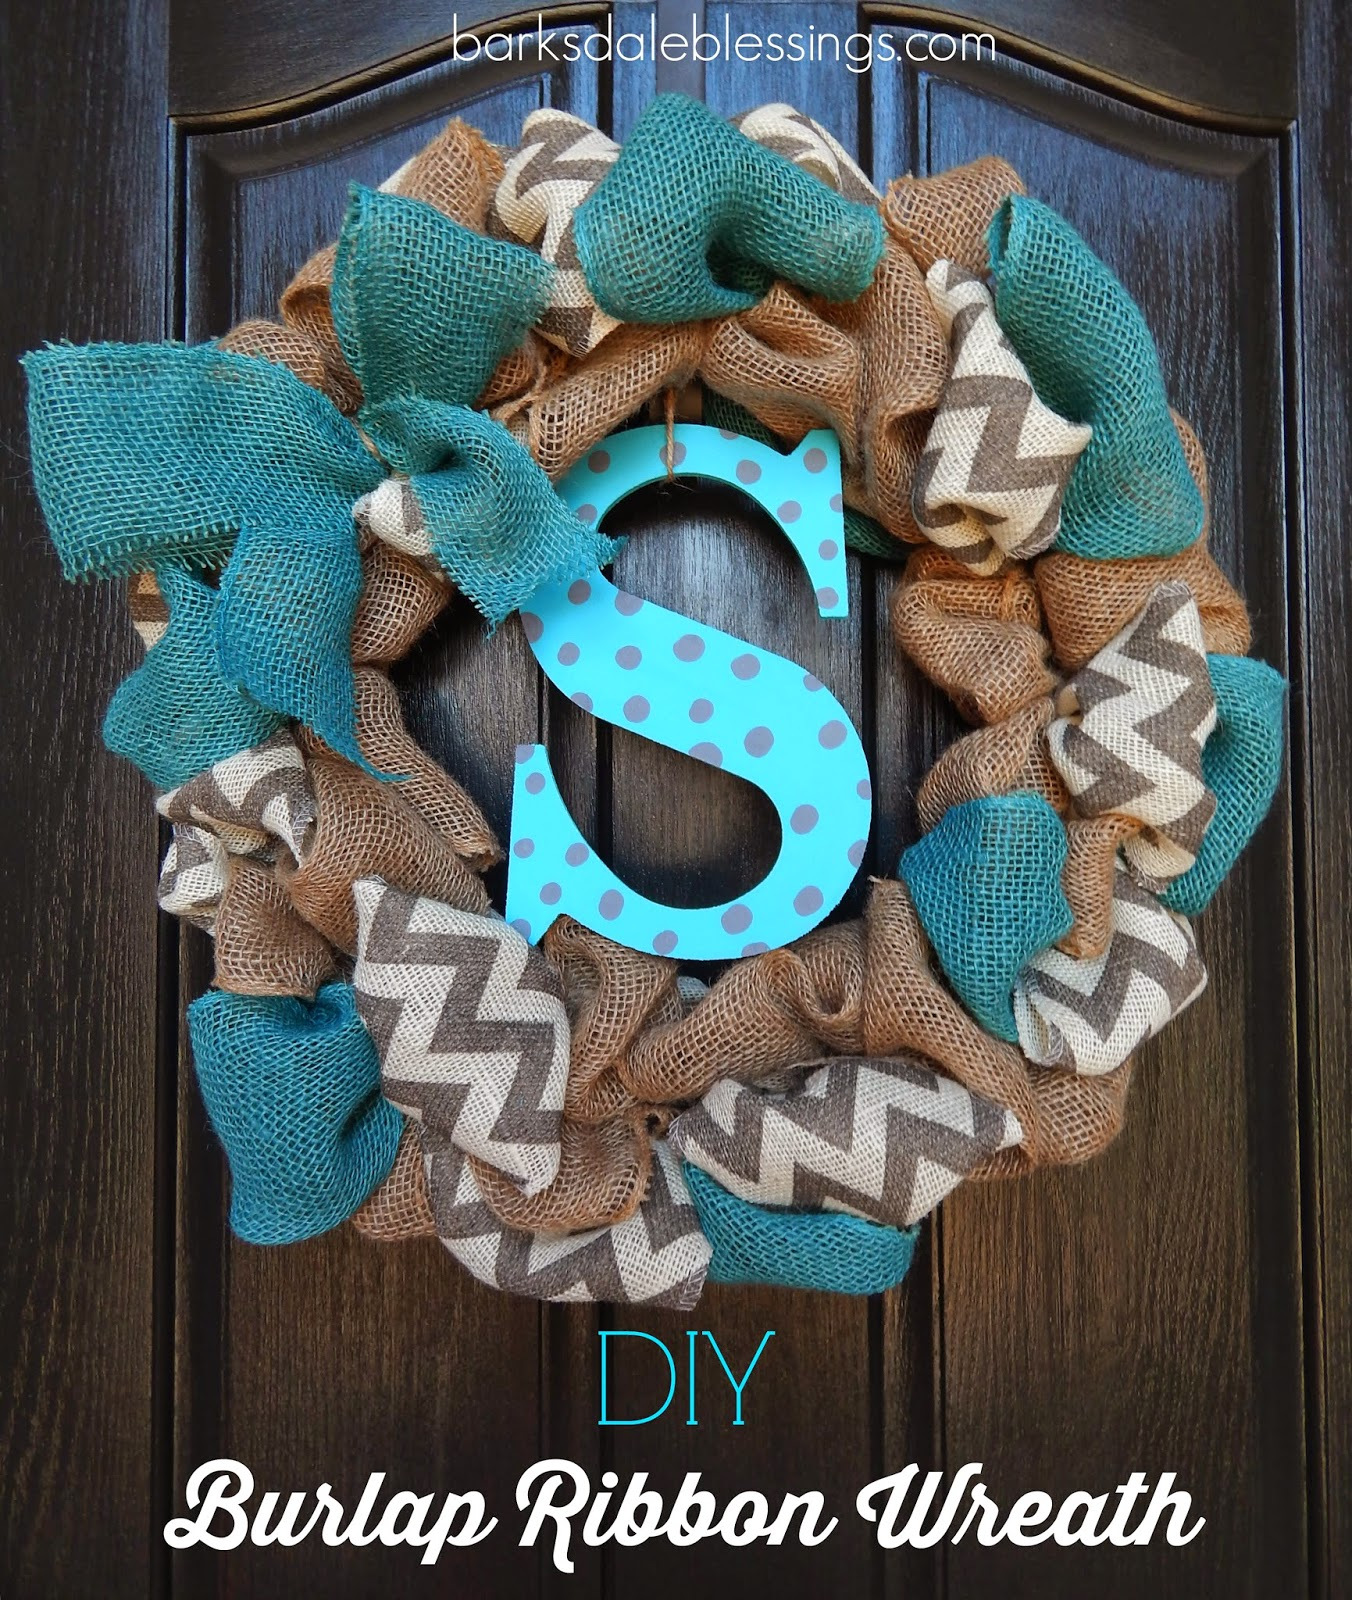 http://barksdaleblessings.blogspot.com/2014/04/diy-burlap-ribbon-wreath.html